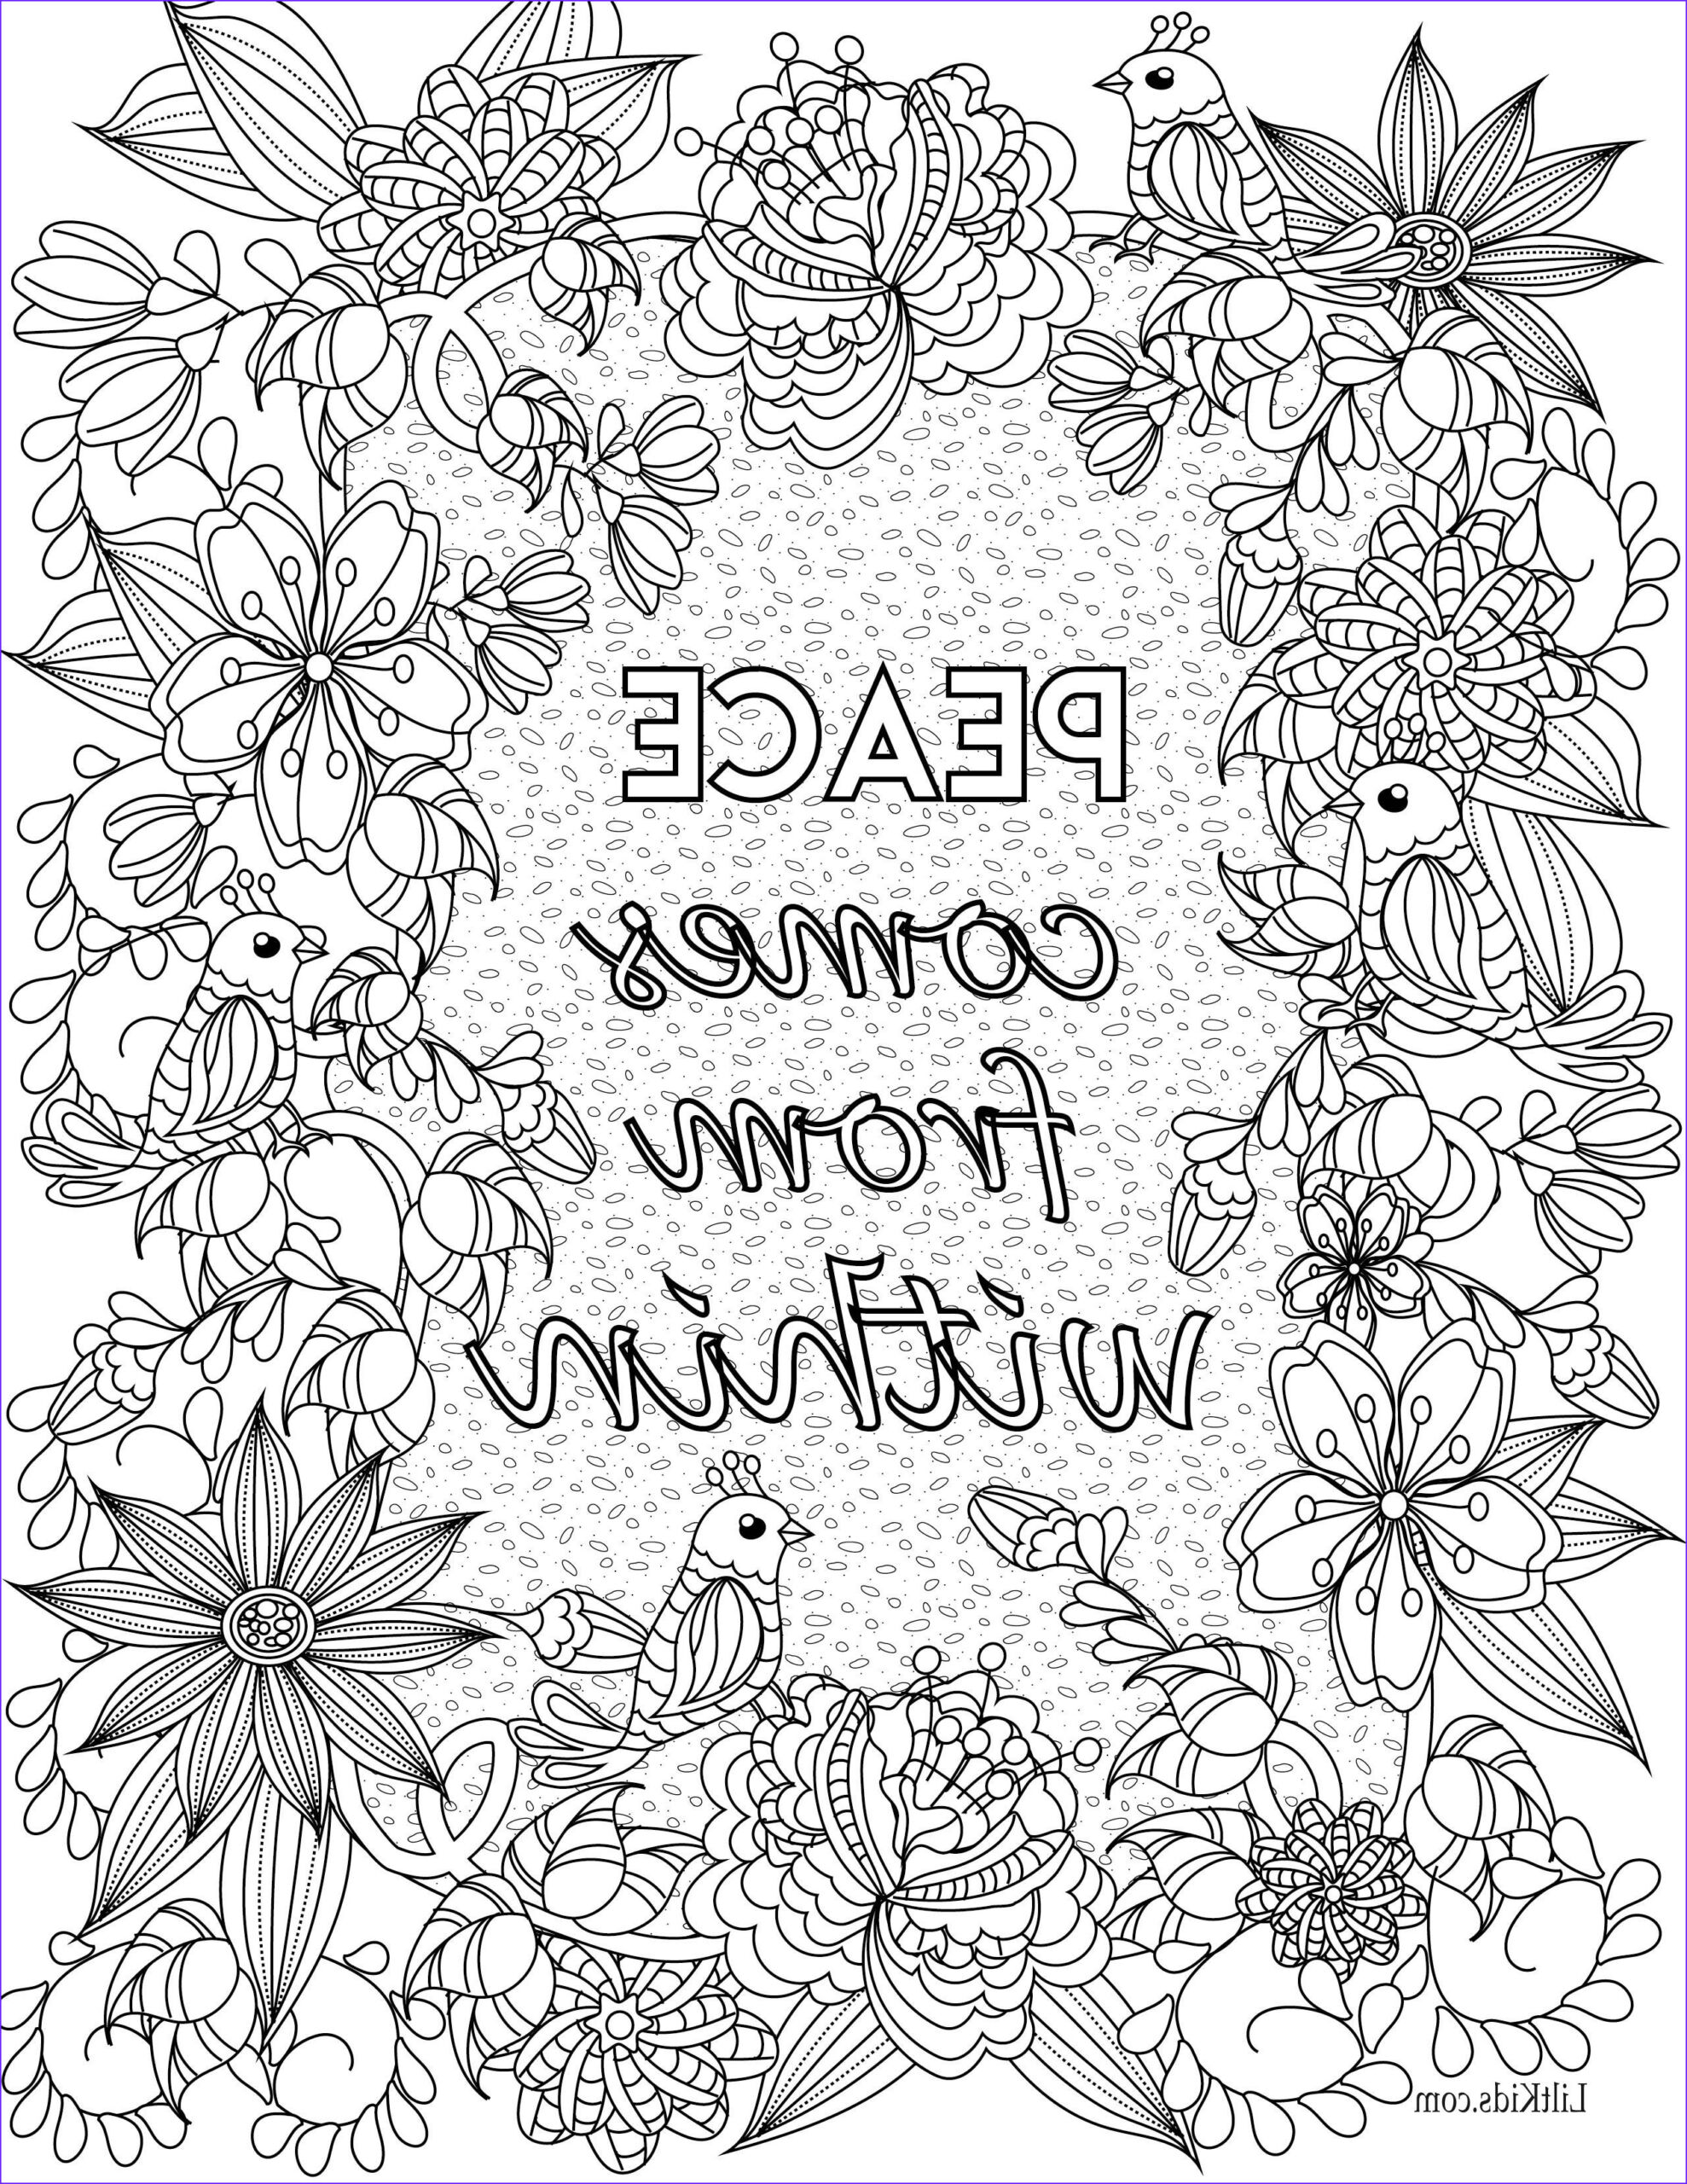 Inspirational Quotes Coloring Page for Adults New Gallery Free Inspirational Quote Adult Coloring Book Image From